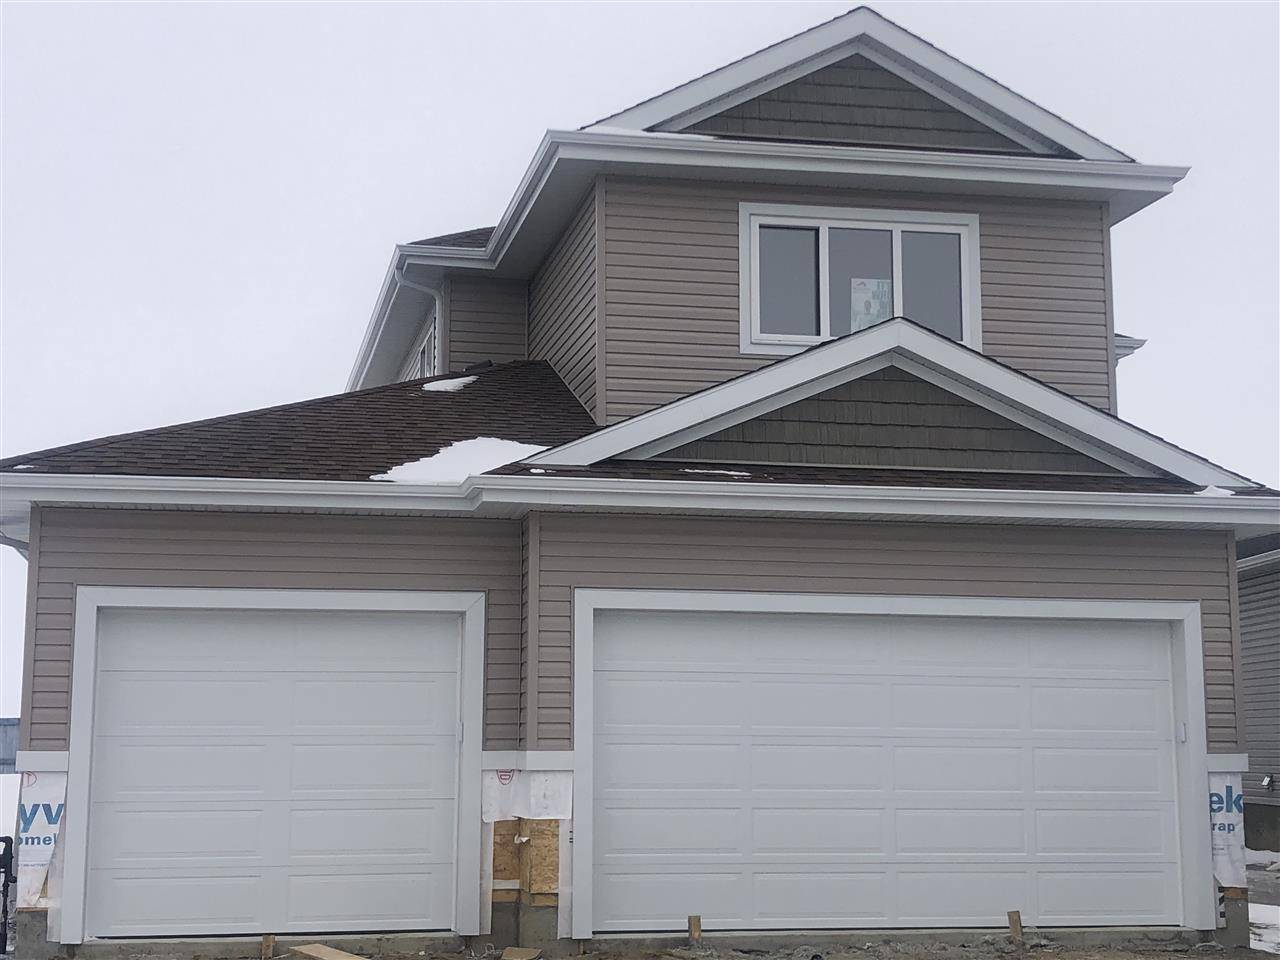 House for sale at 122 Houle Dr Morinville Alberta - MLS: E4181843